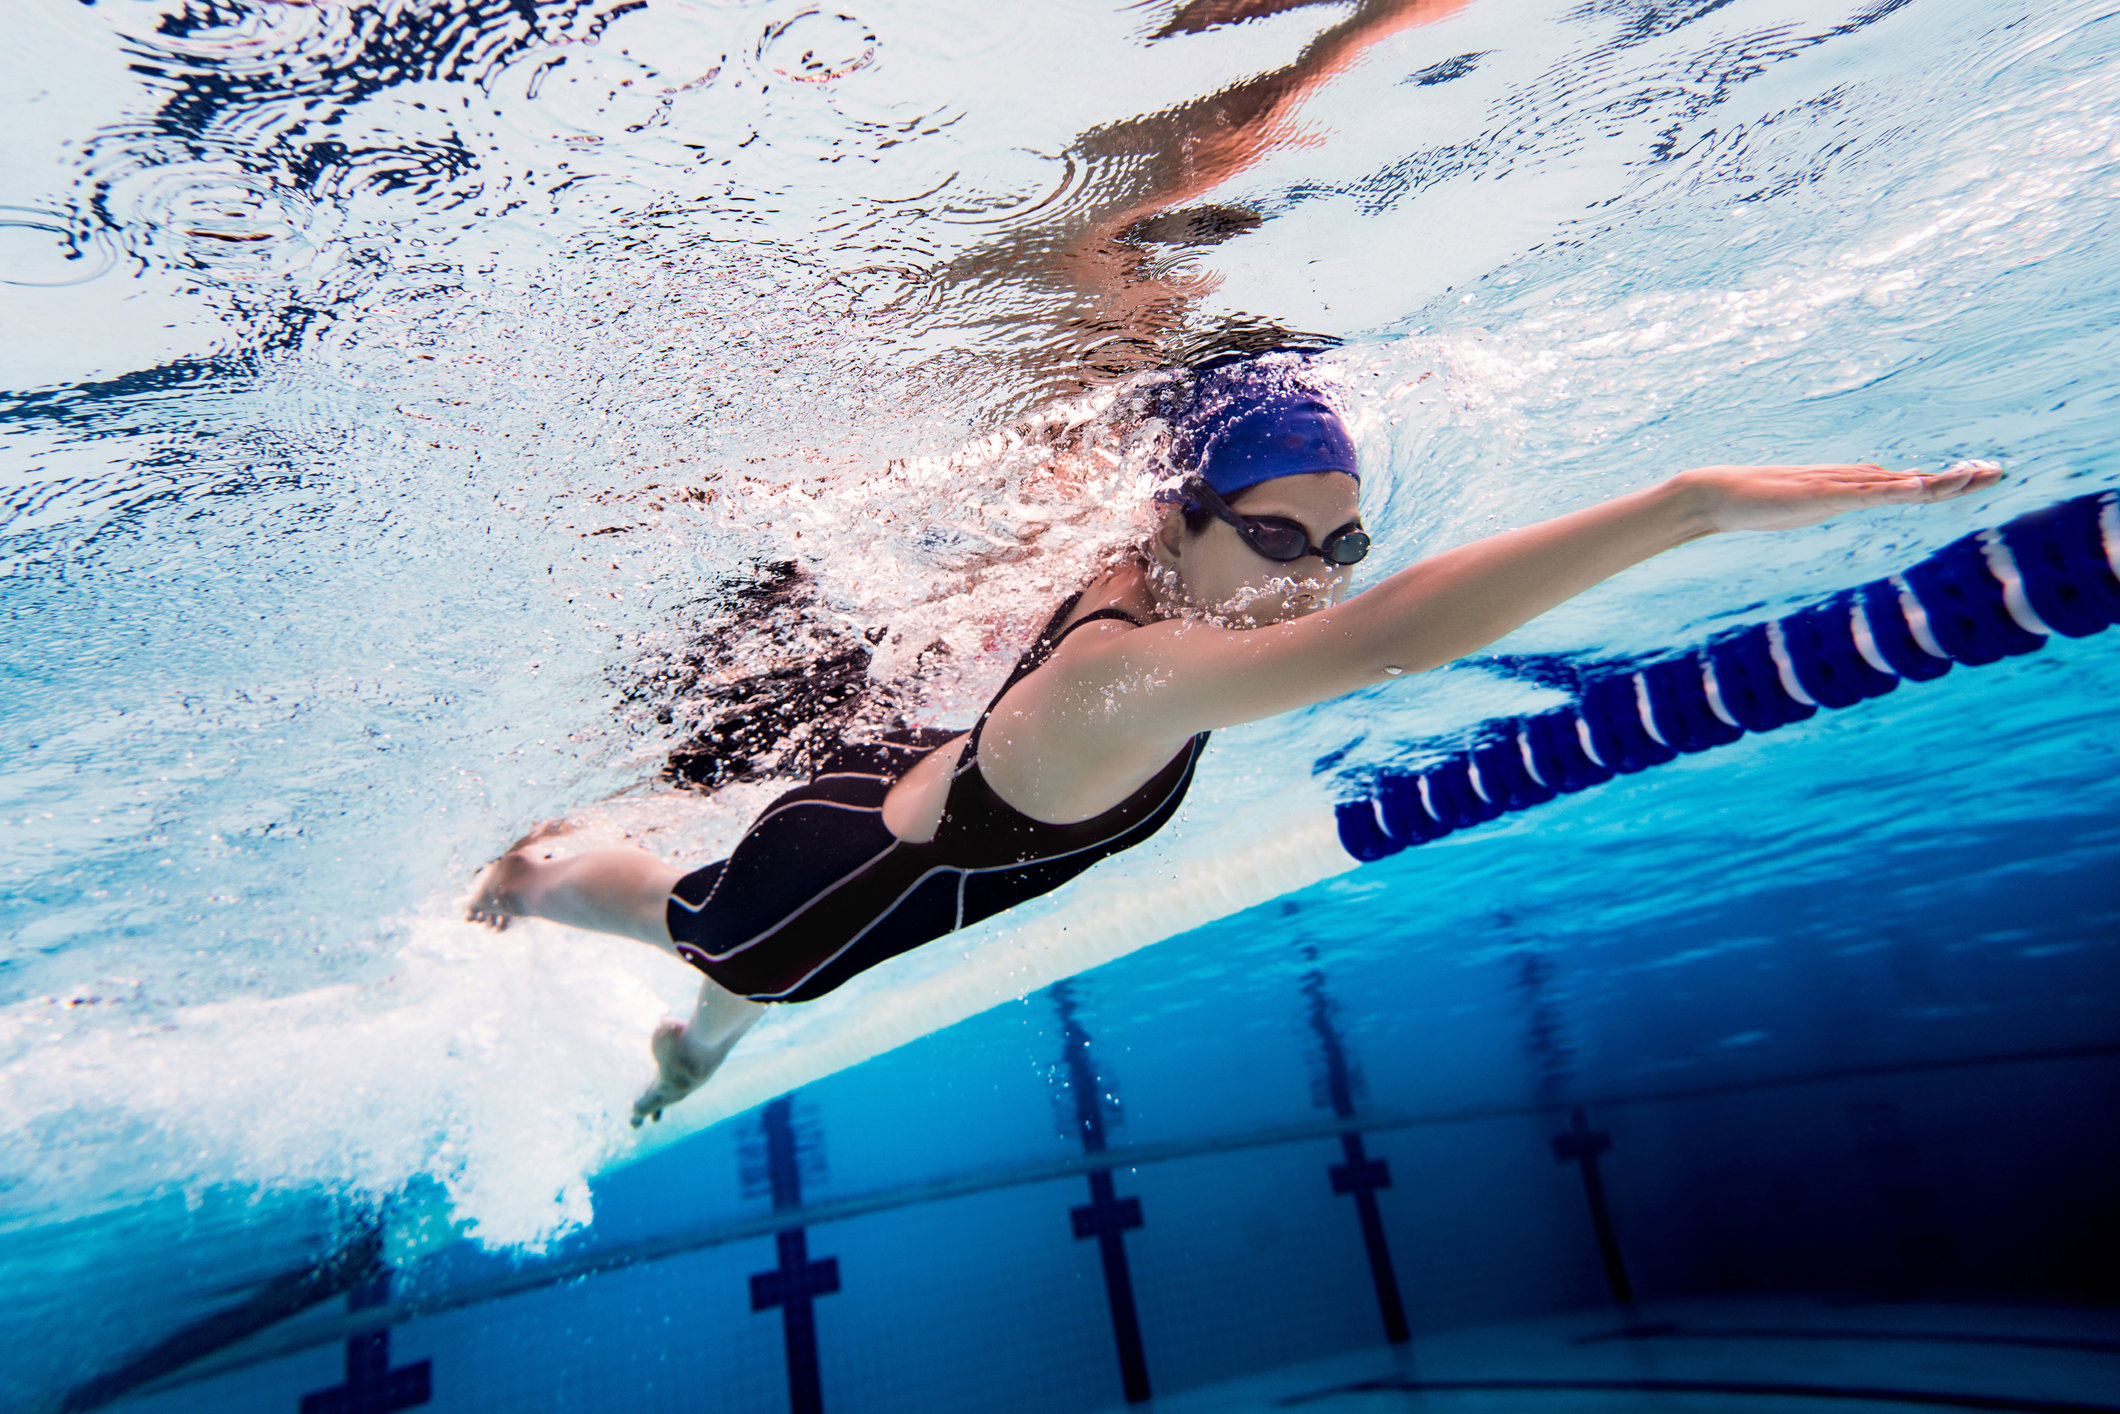 Best fitness trackers for swimming from Garmin, Moov and